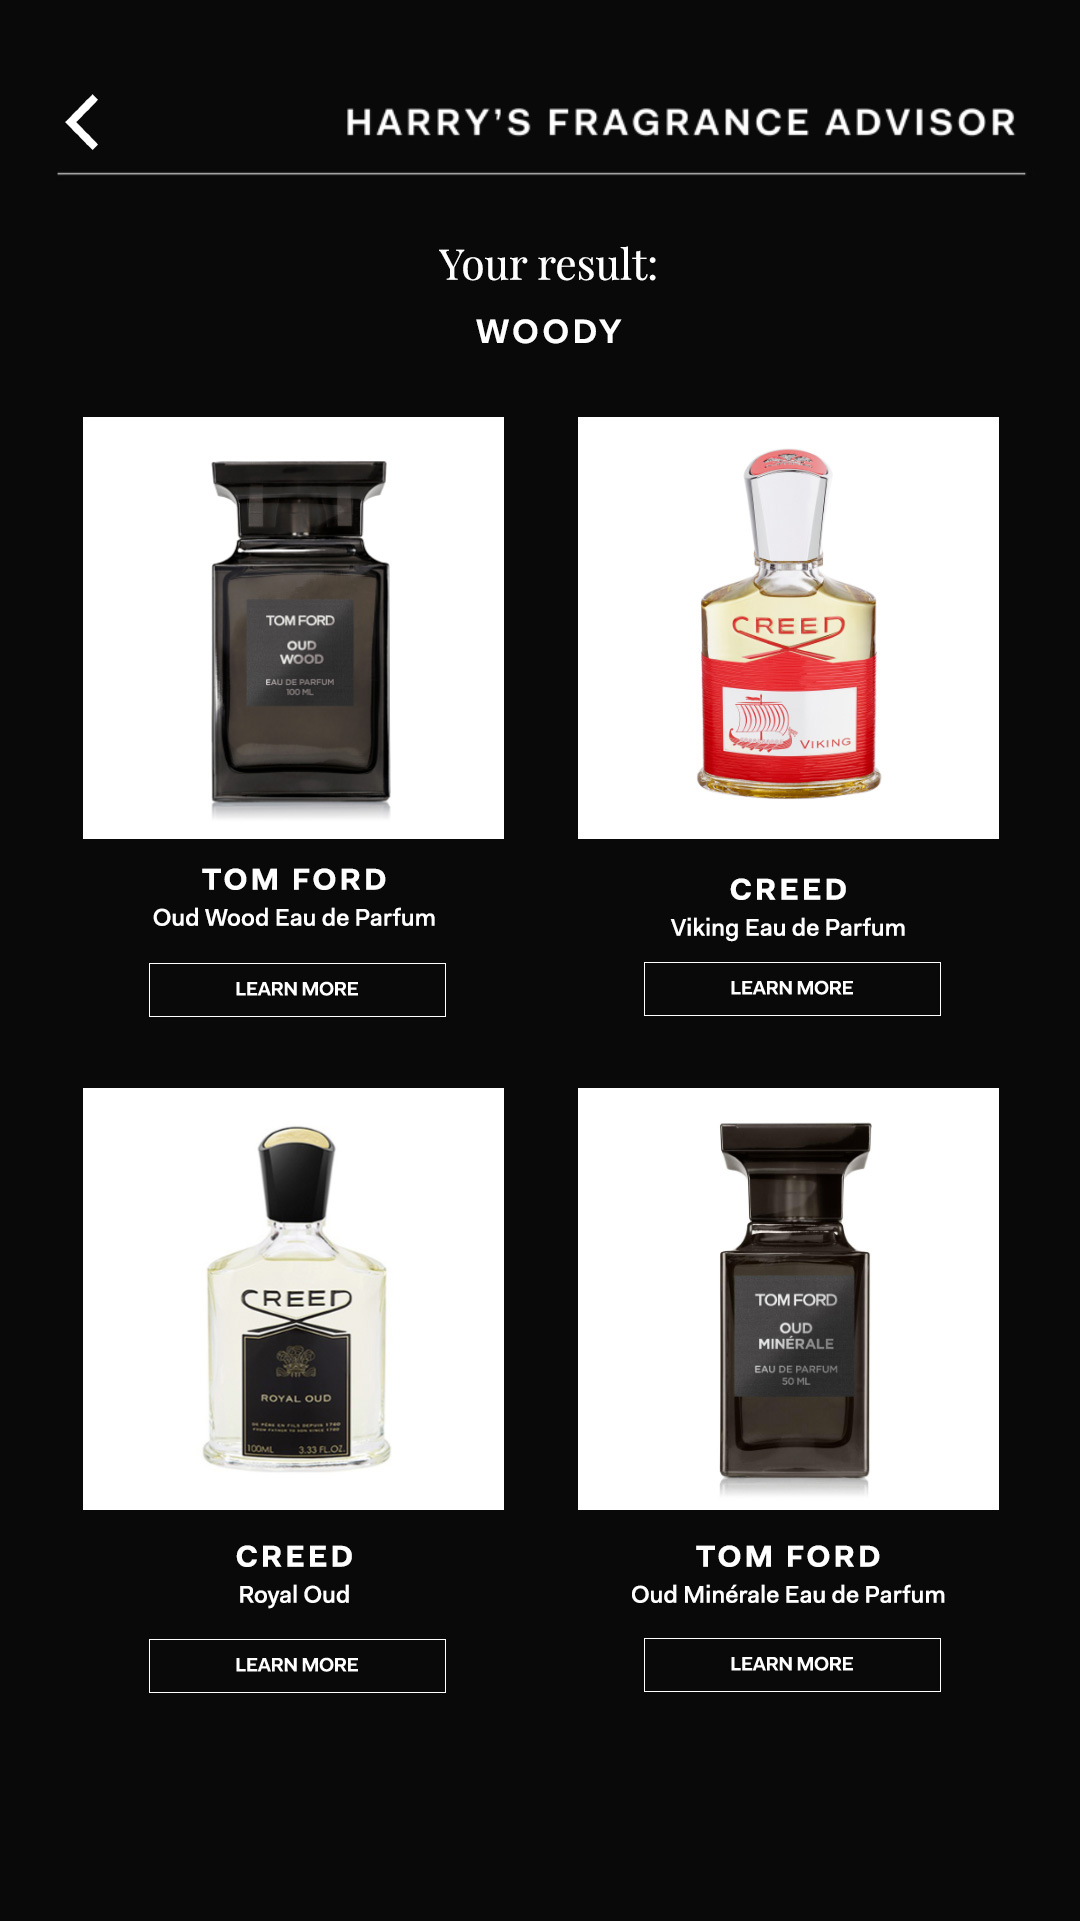 harrys-fragrance-advisor-wood